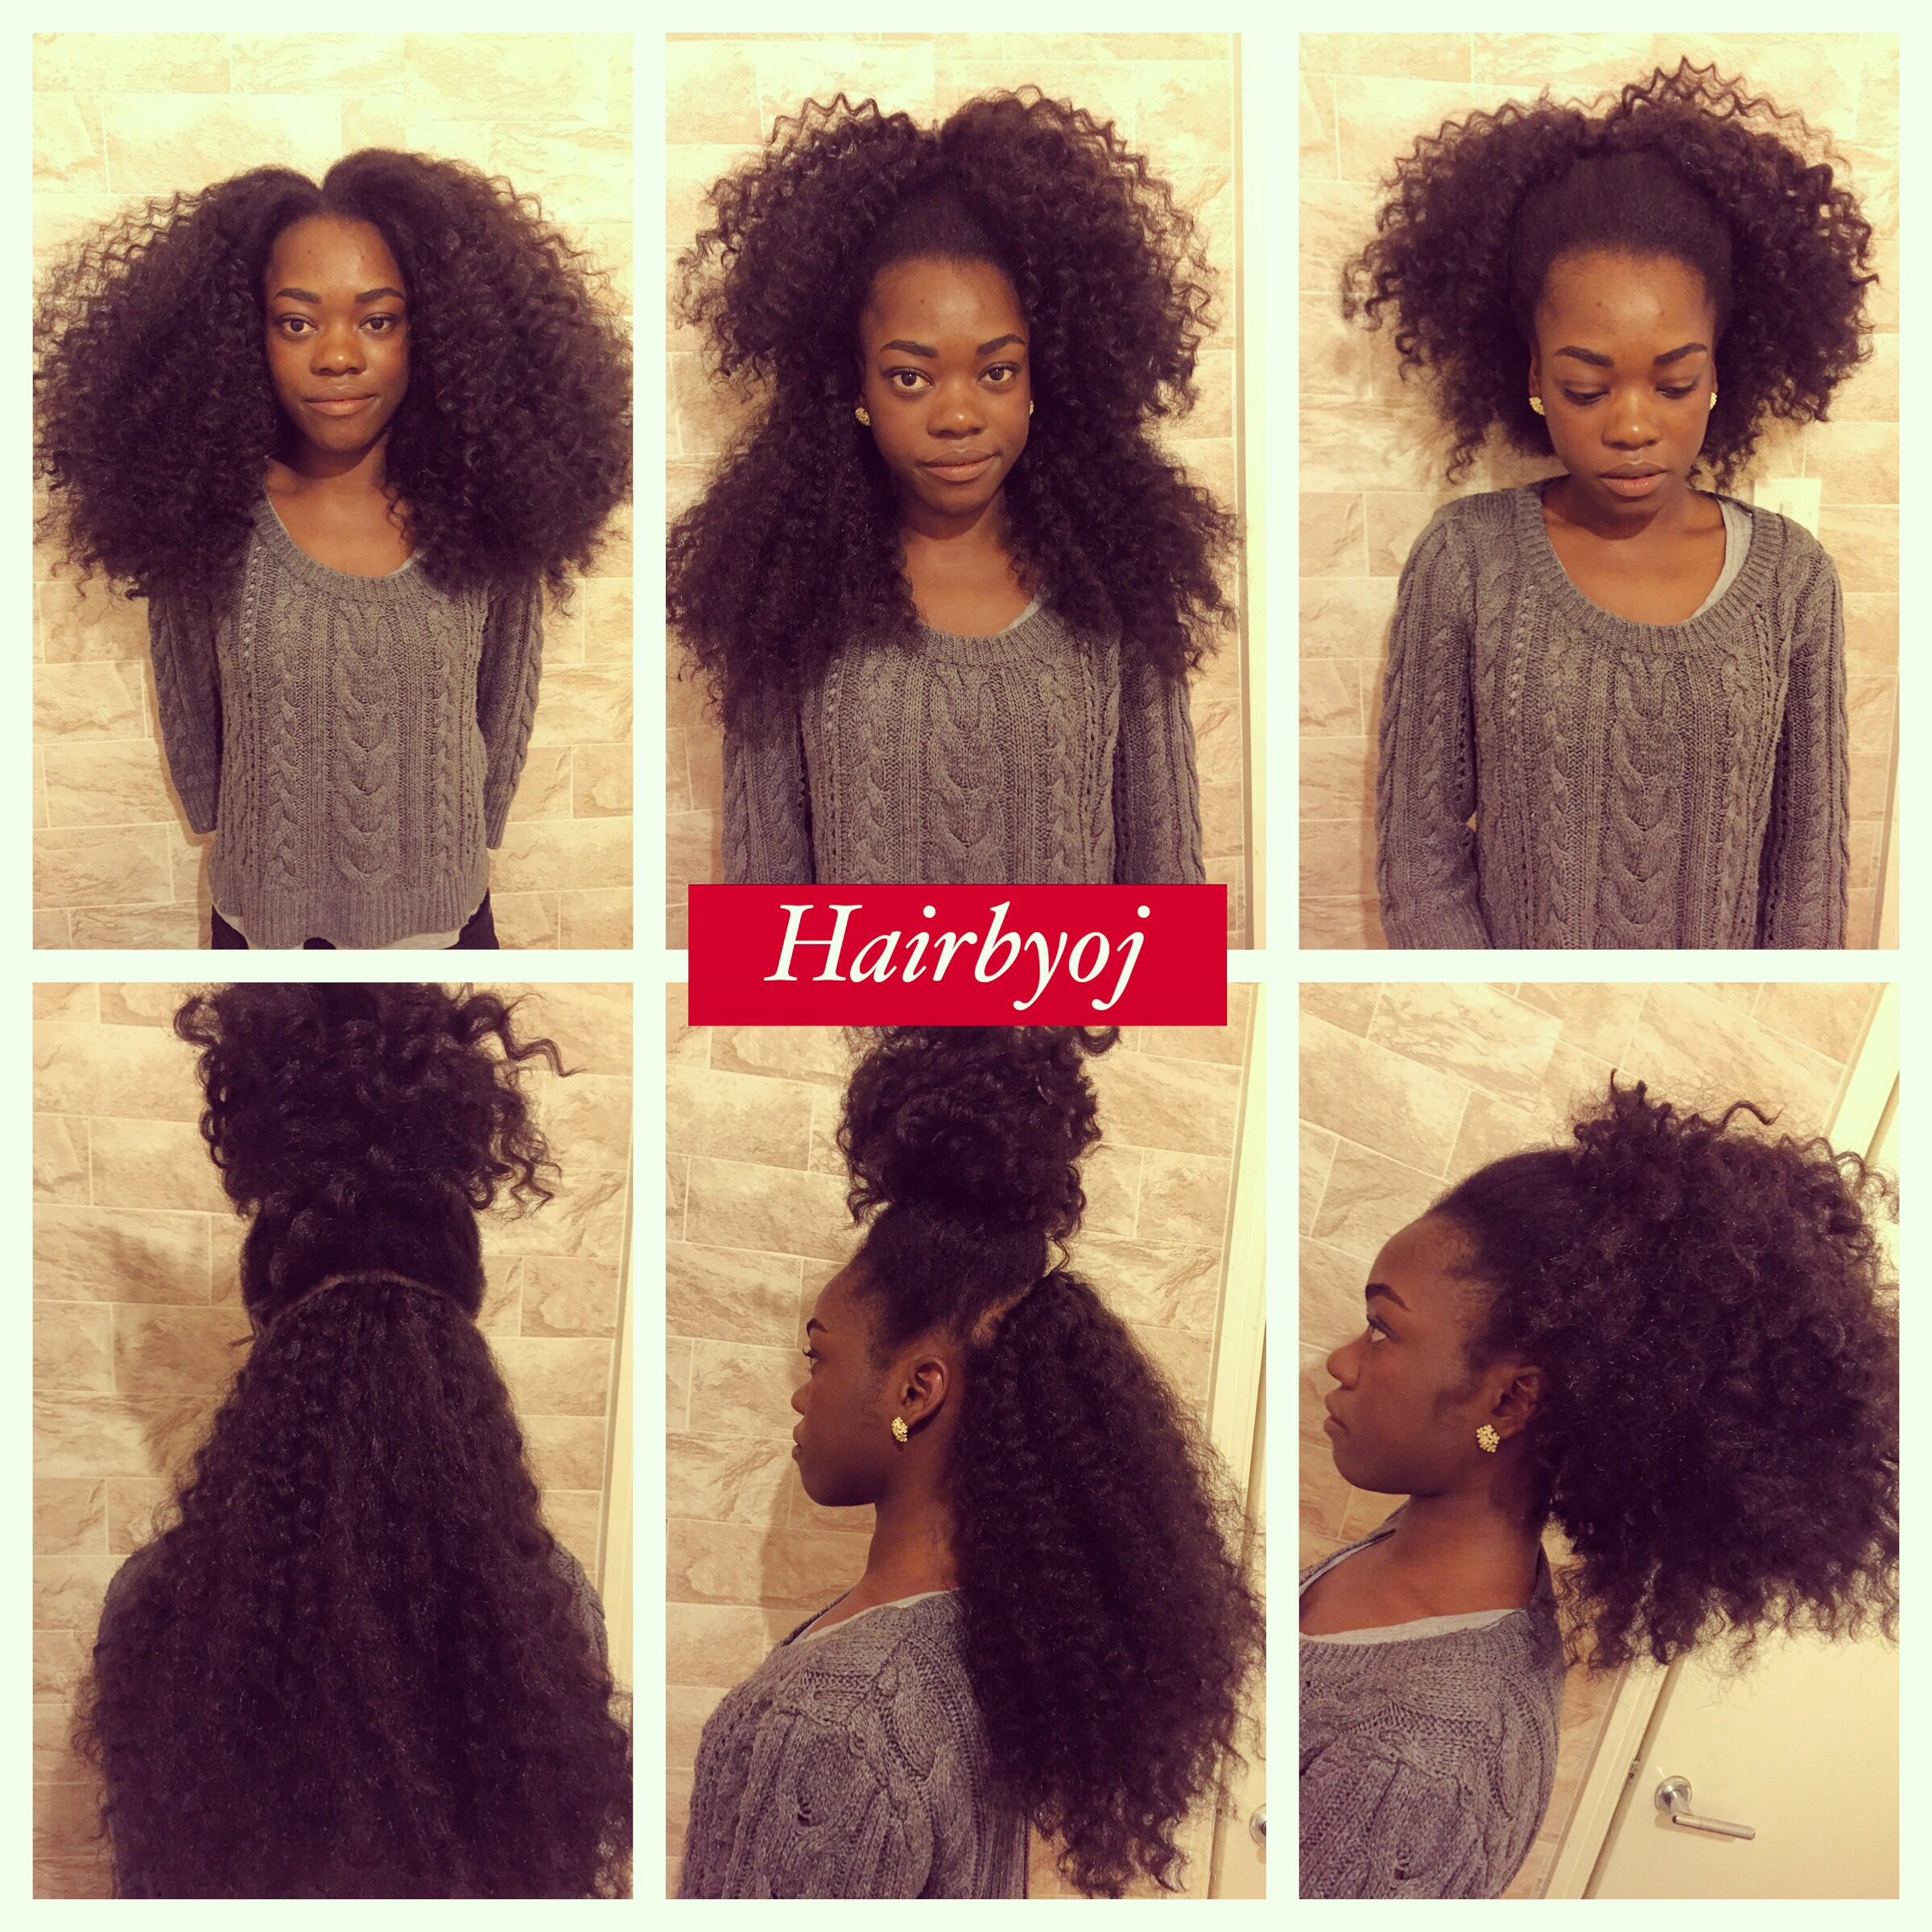 Crochet Marley Hair Vixen : ... knotless vixen crochet braids with perimeter leave out ? hairbyoj